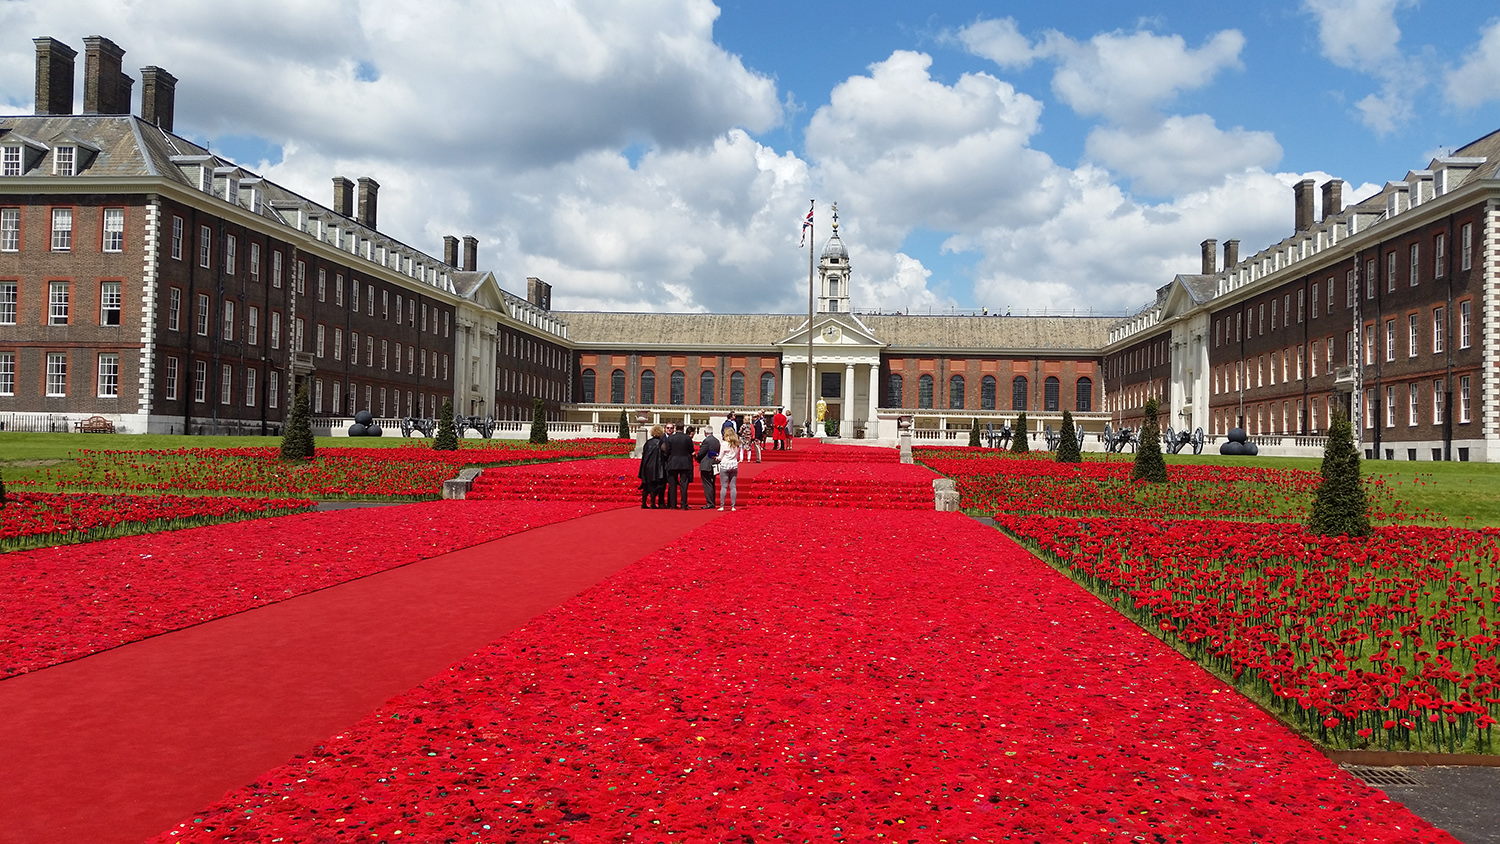 Royal Chelsea Hospital London - Flower Show